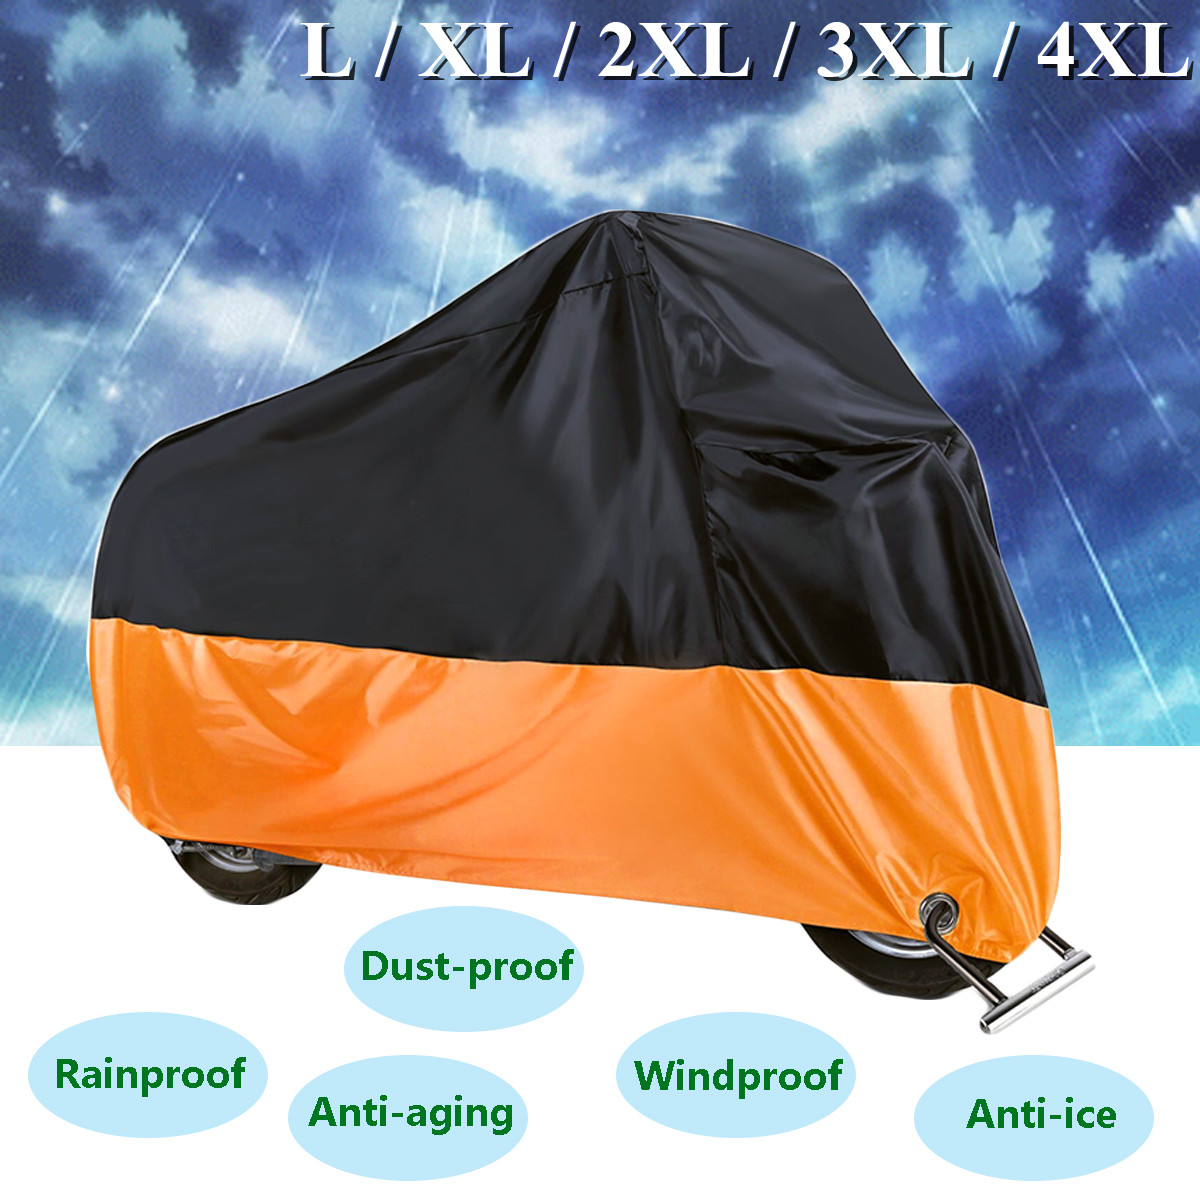 190T Waterproof Motorcycle Cover Case Outdoor Protect Rain Dust UV Motorbike Protector L/XL/2XL/3XL/4XL Elastic Hem Side Squeeze 2xl 3xl